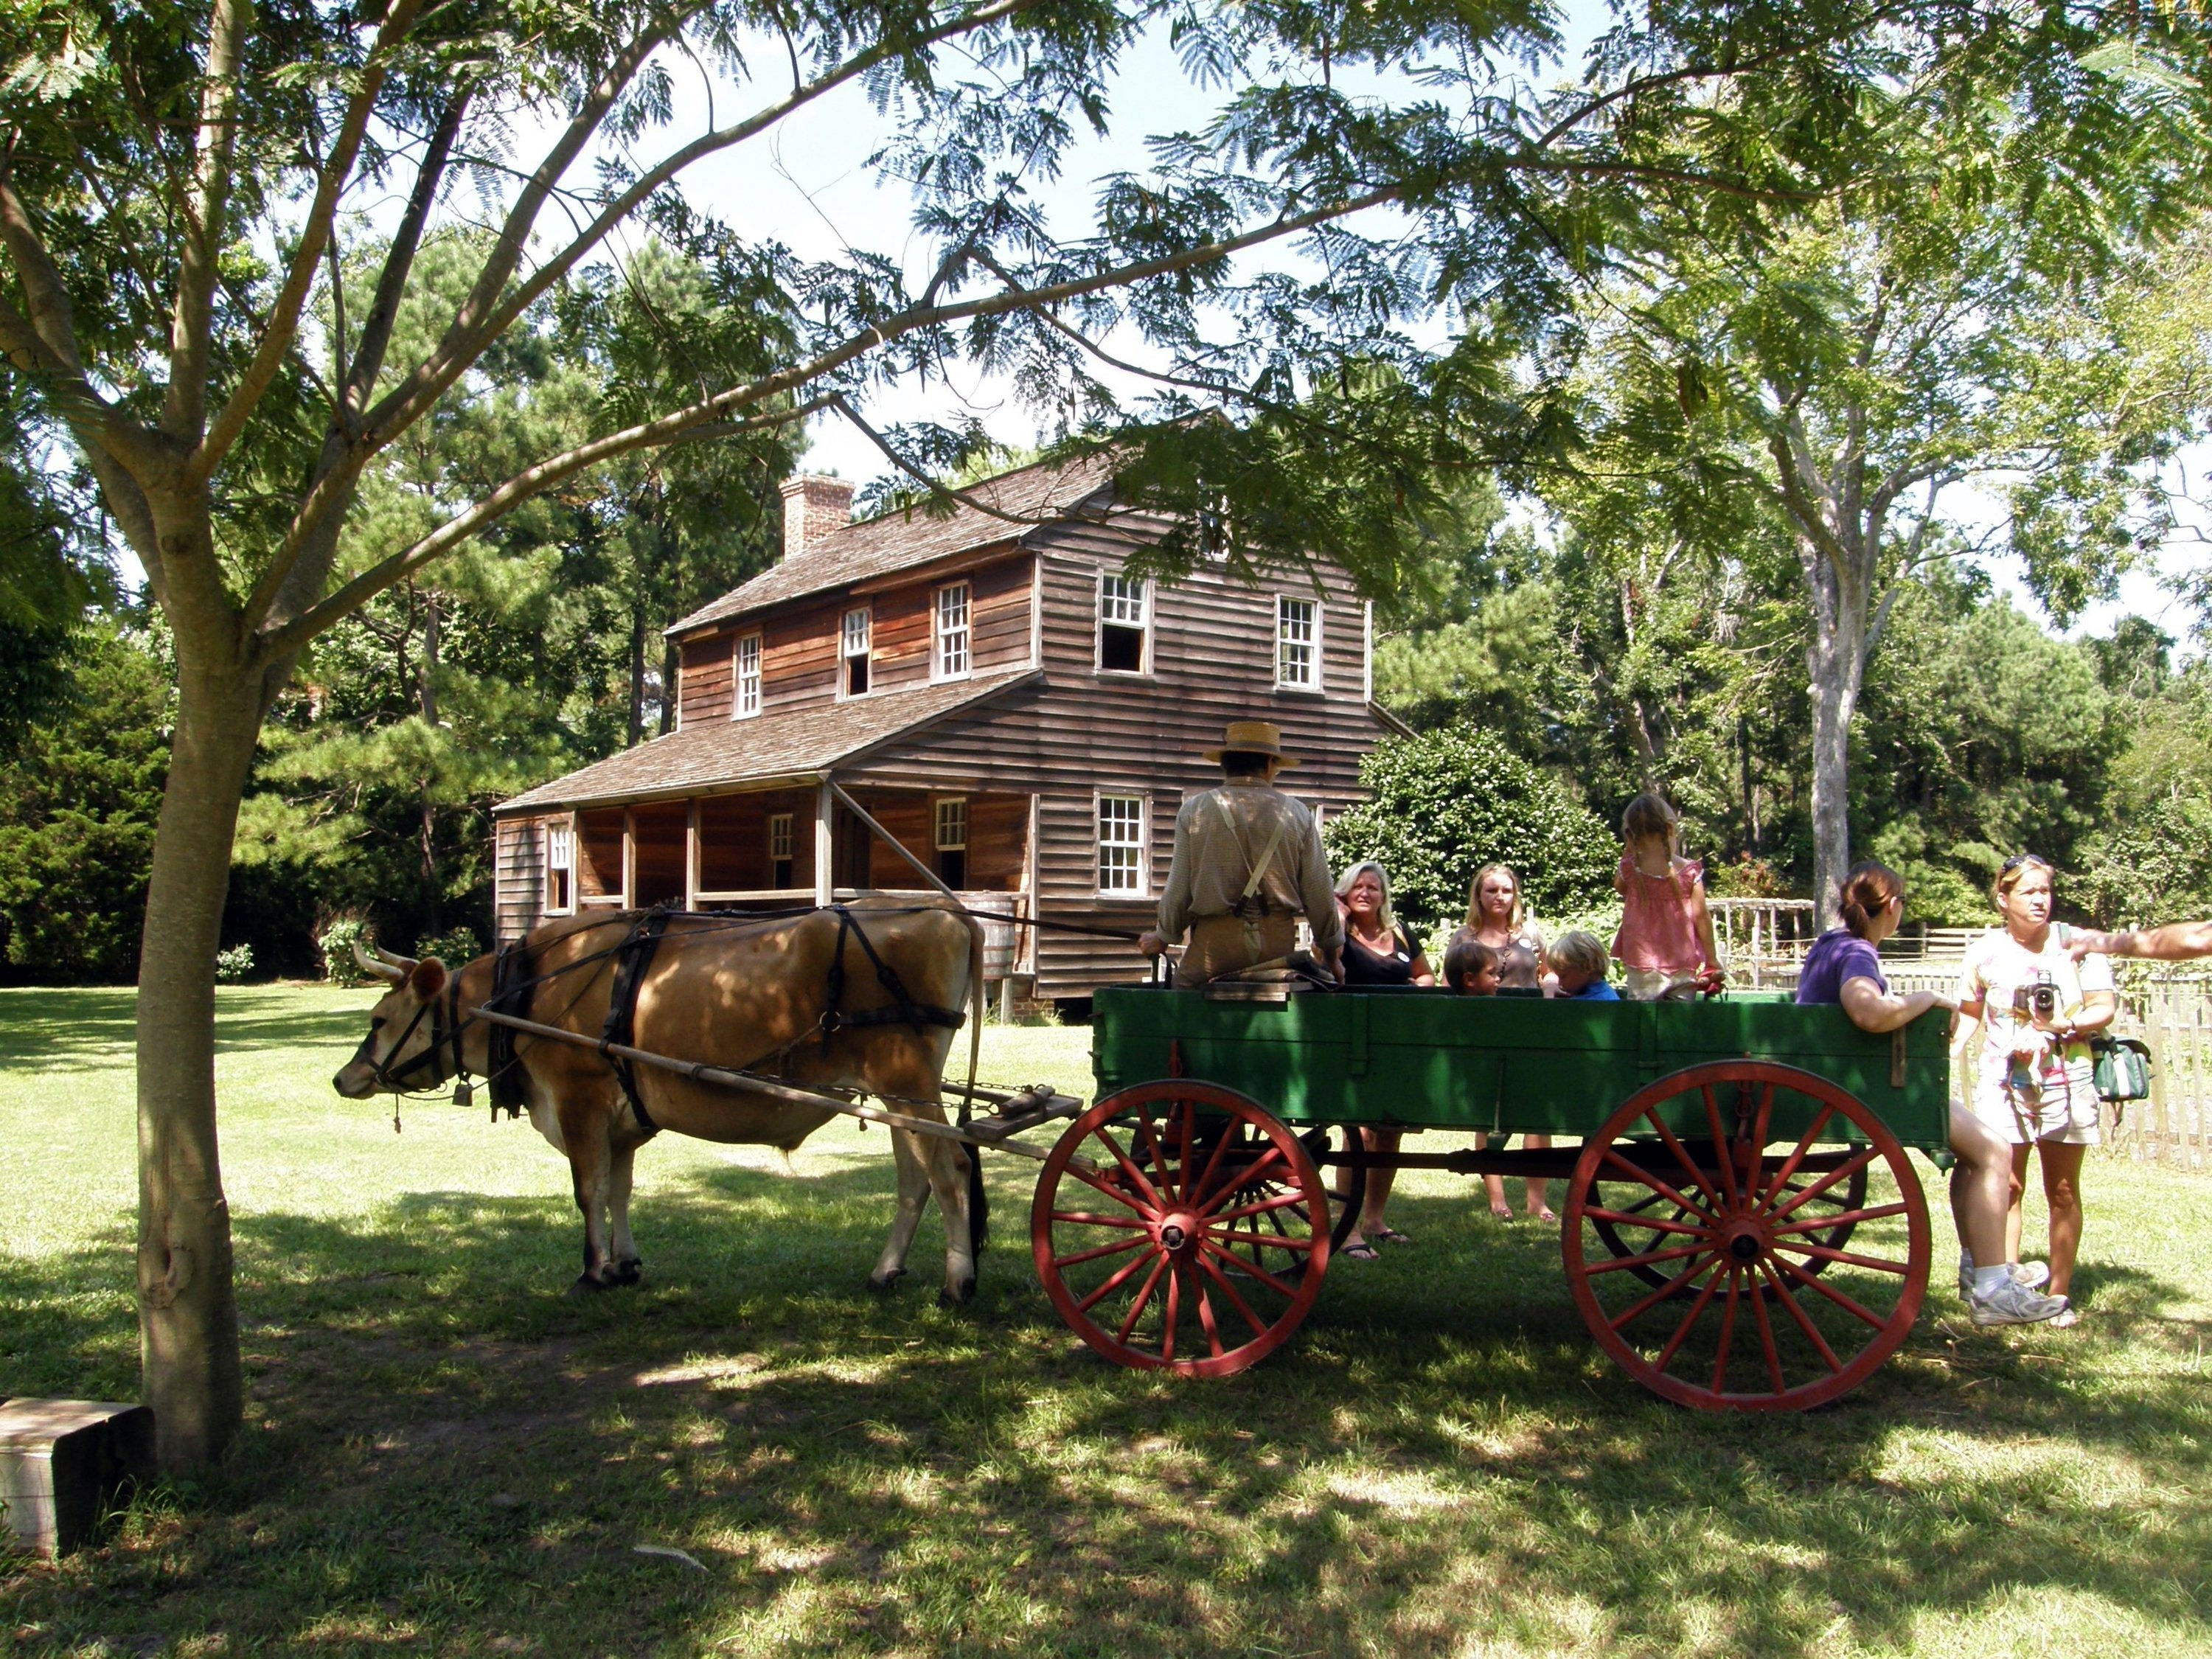 Island Farm offers a glimpse of everyday life on a mid-19th-century farm. The Roanoke Island property is where Richard Ethridge, the only African-American captain of the U.S. Life Saving Service, grew up.